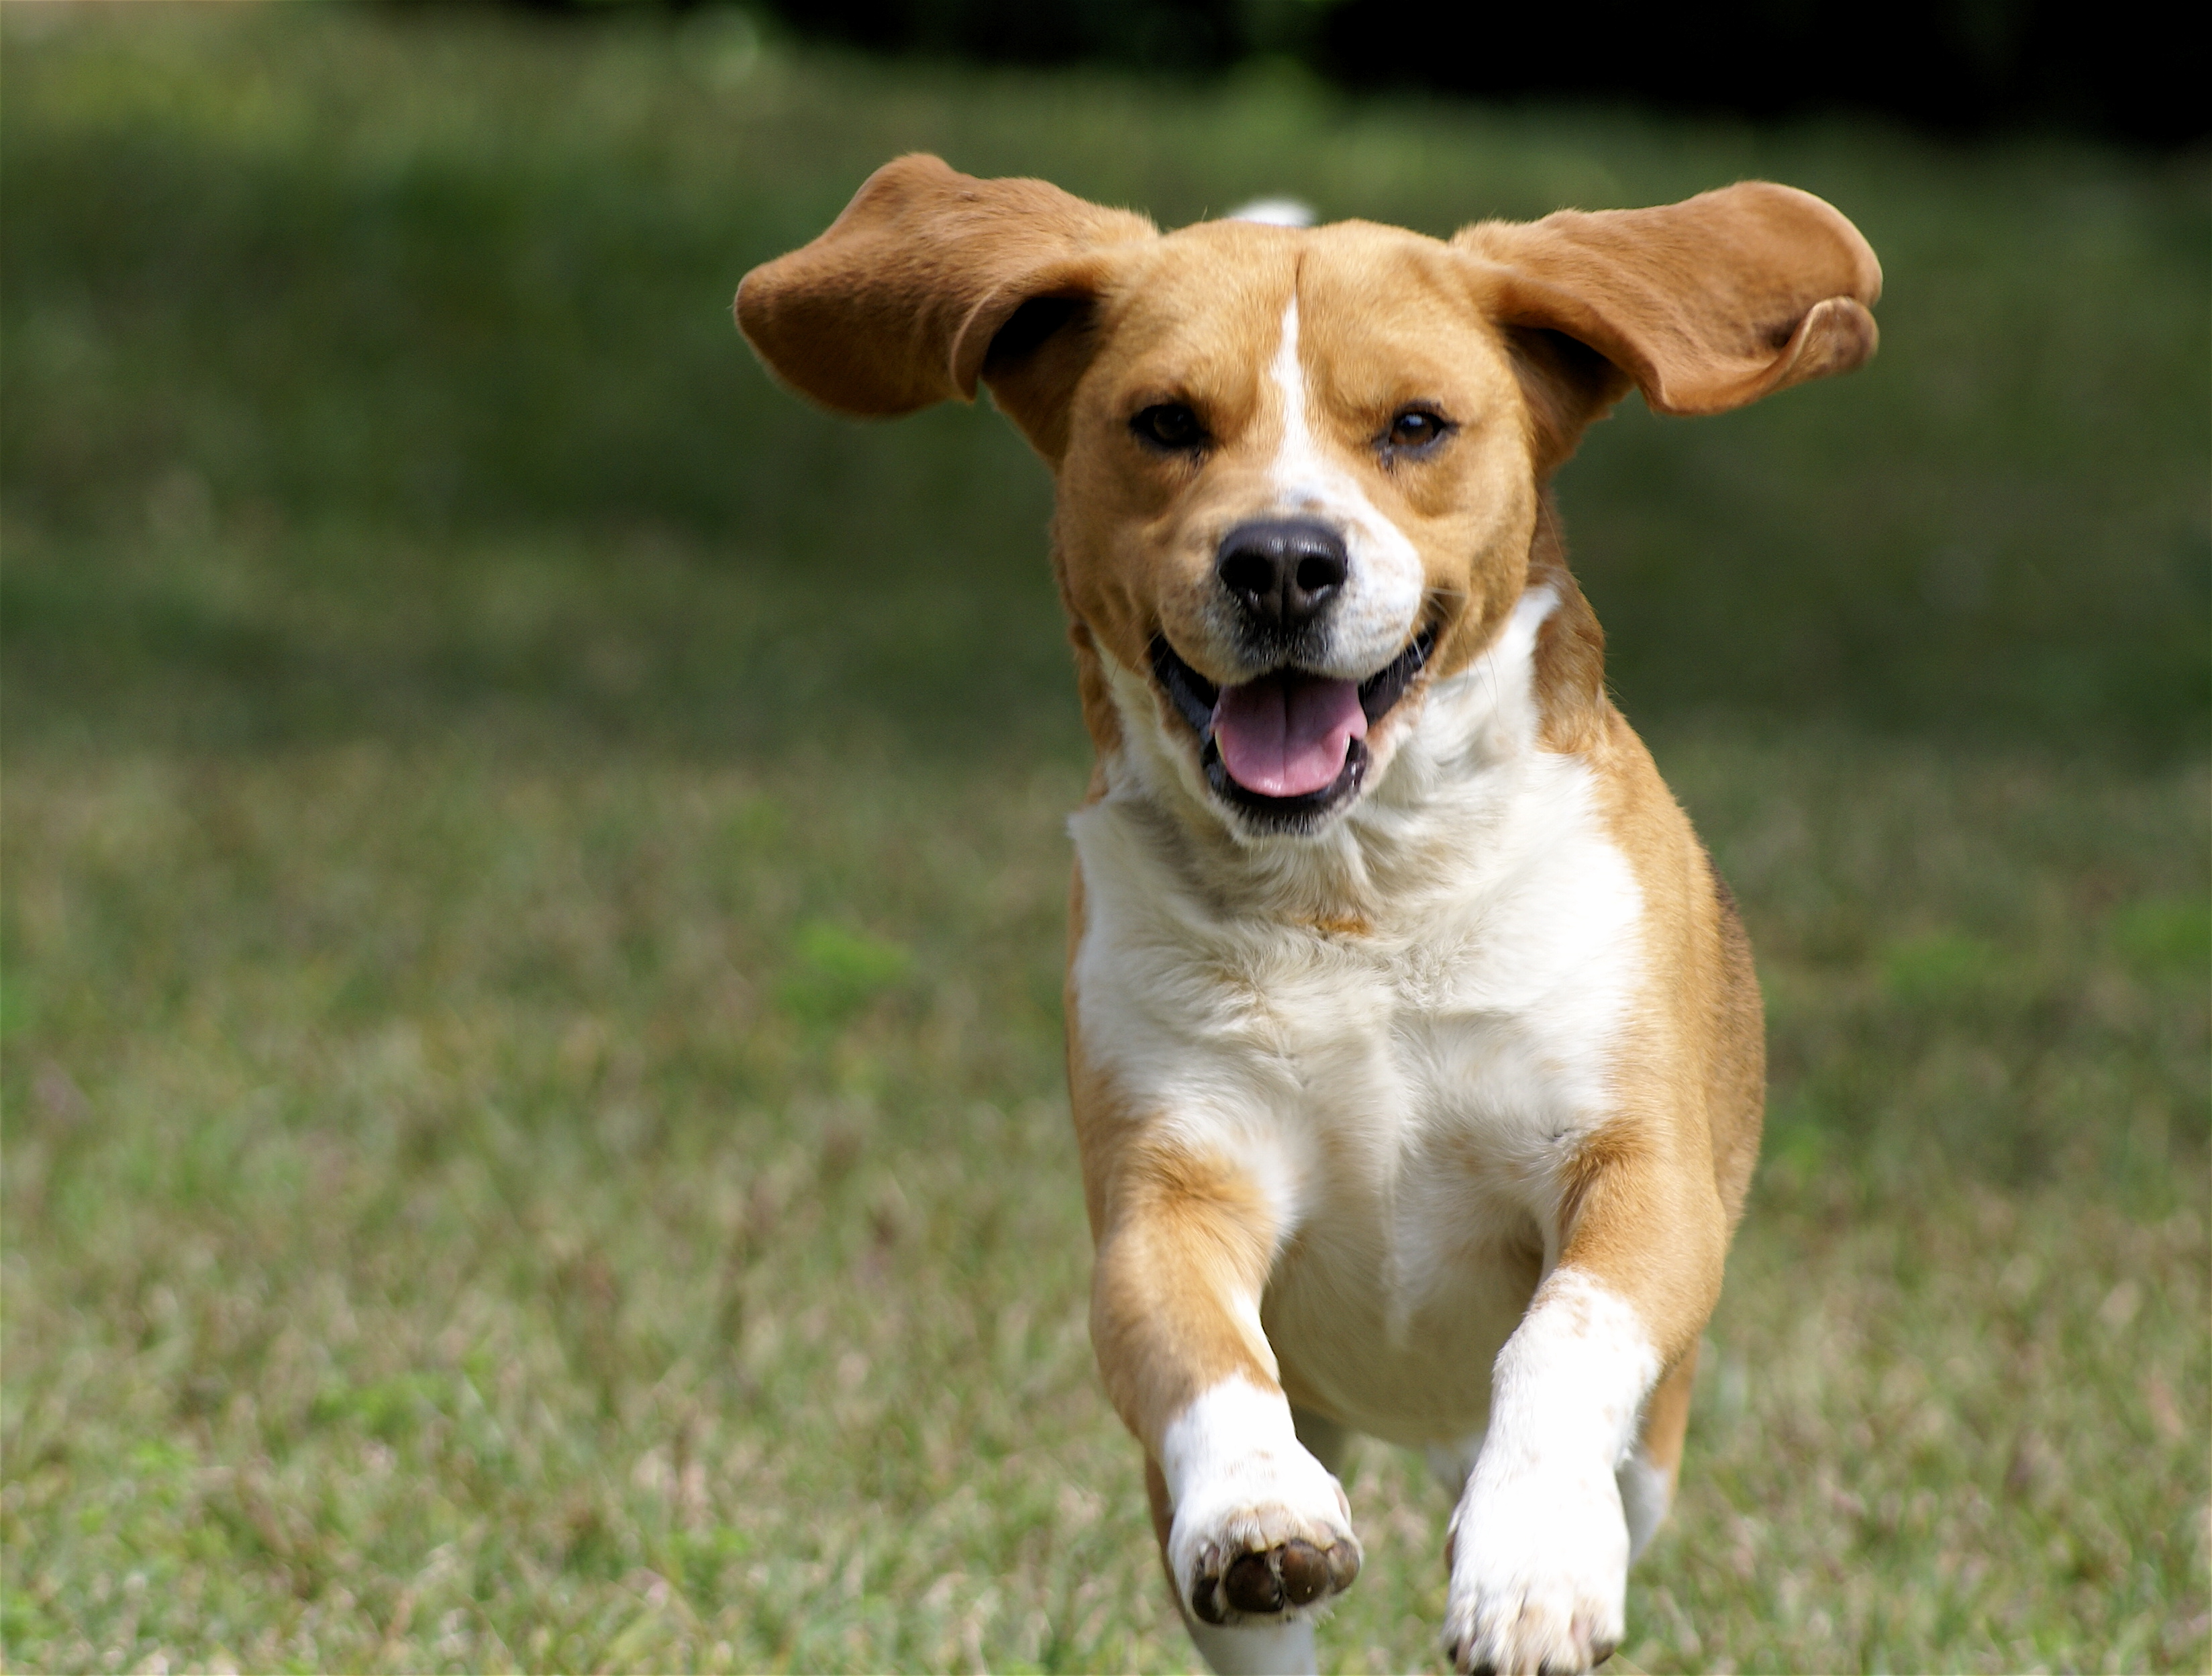 9 reasons to own a dog - Business Insider